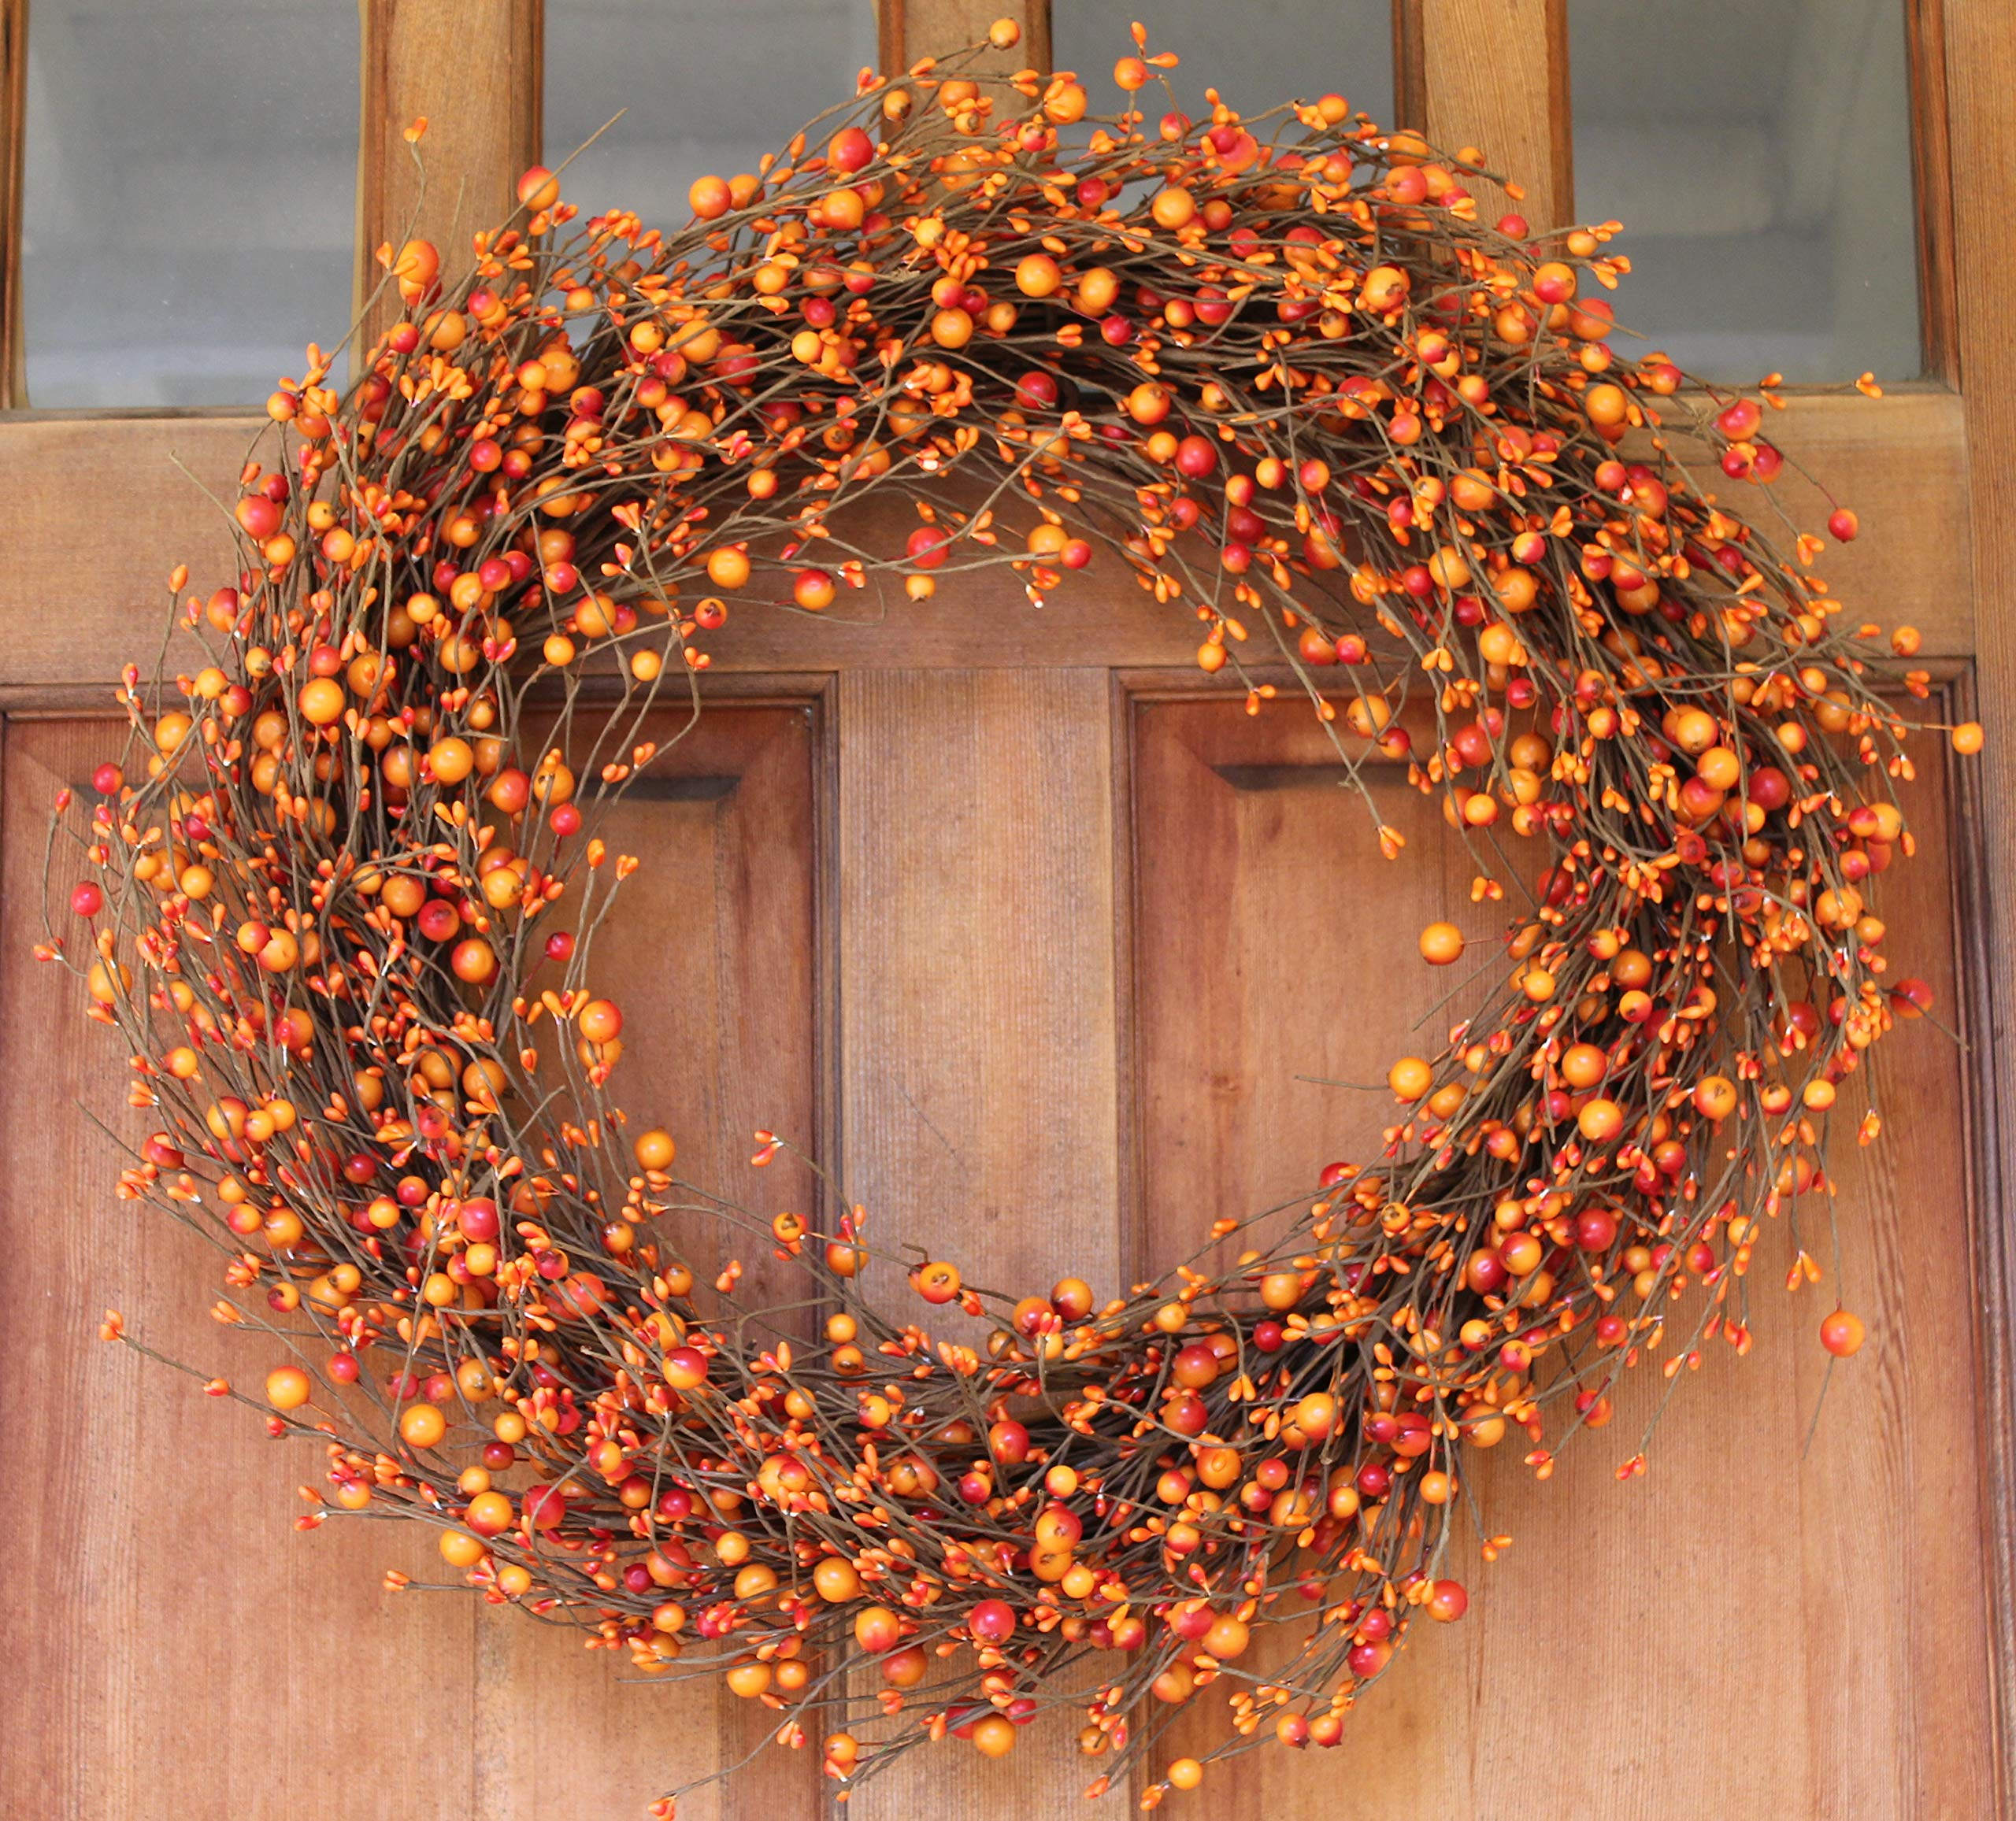 The Wreath Depot Weston Fall Berry Wreath, 22 Inches by The Wreath Depot (Image #3)